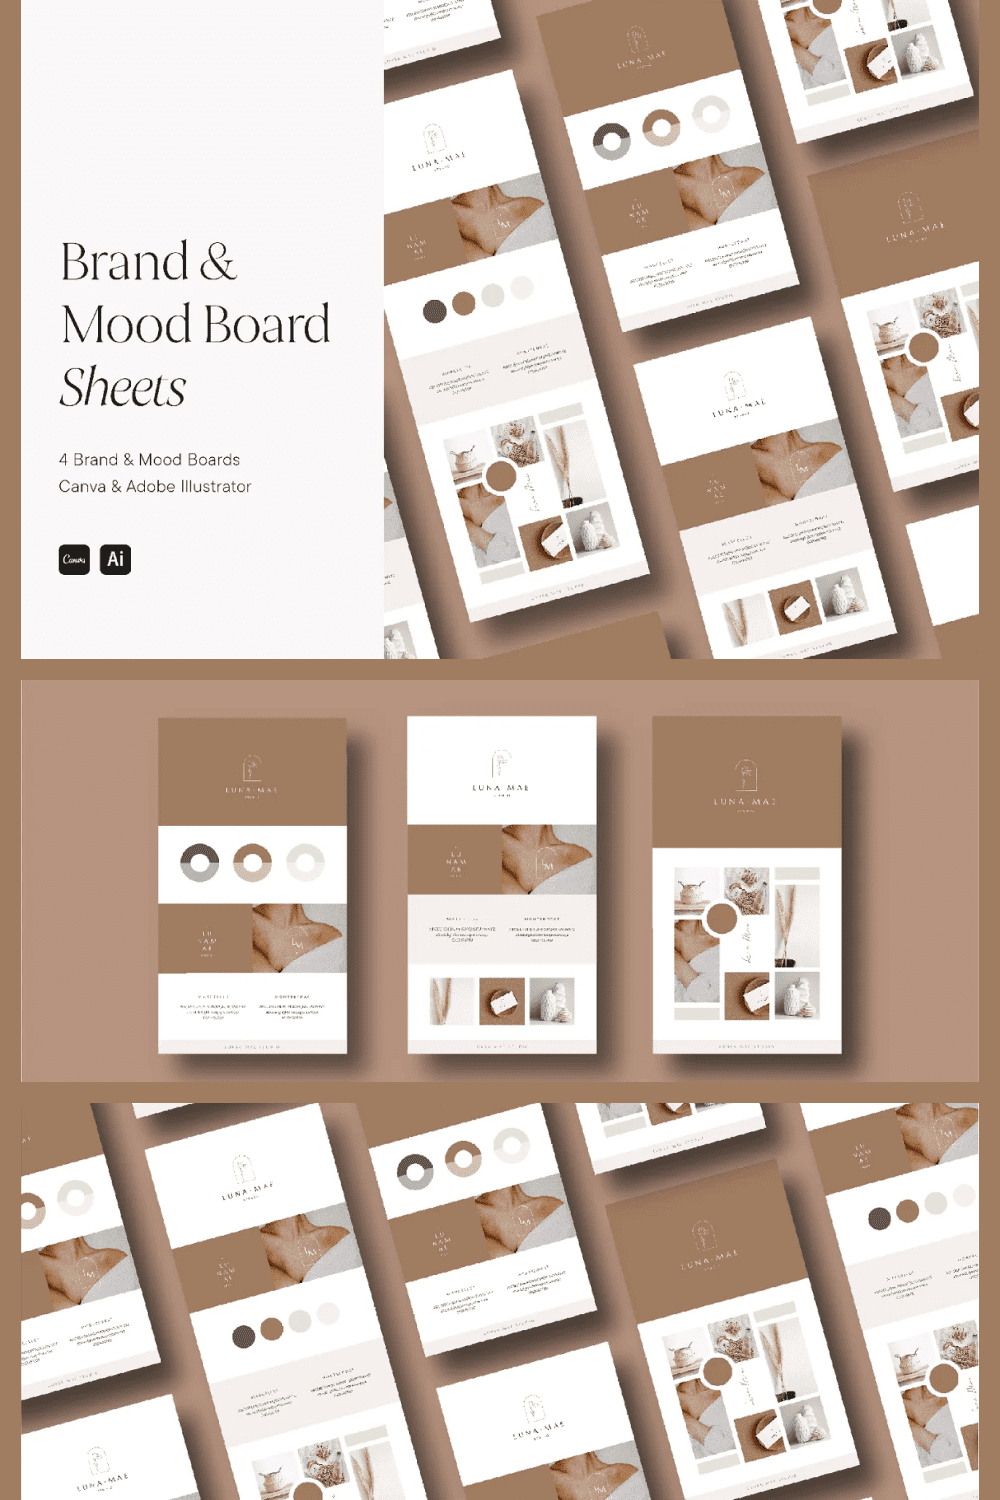 Brown and beige colors, soft lines and shapes and an inspiring look.